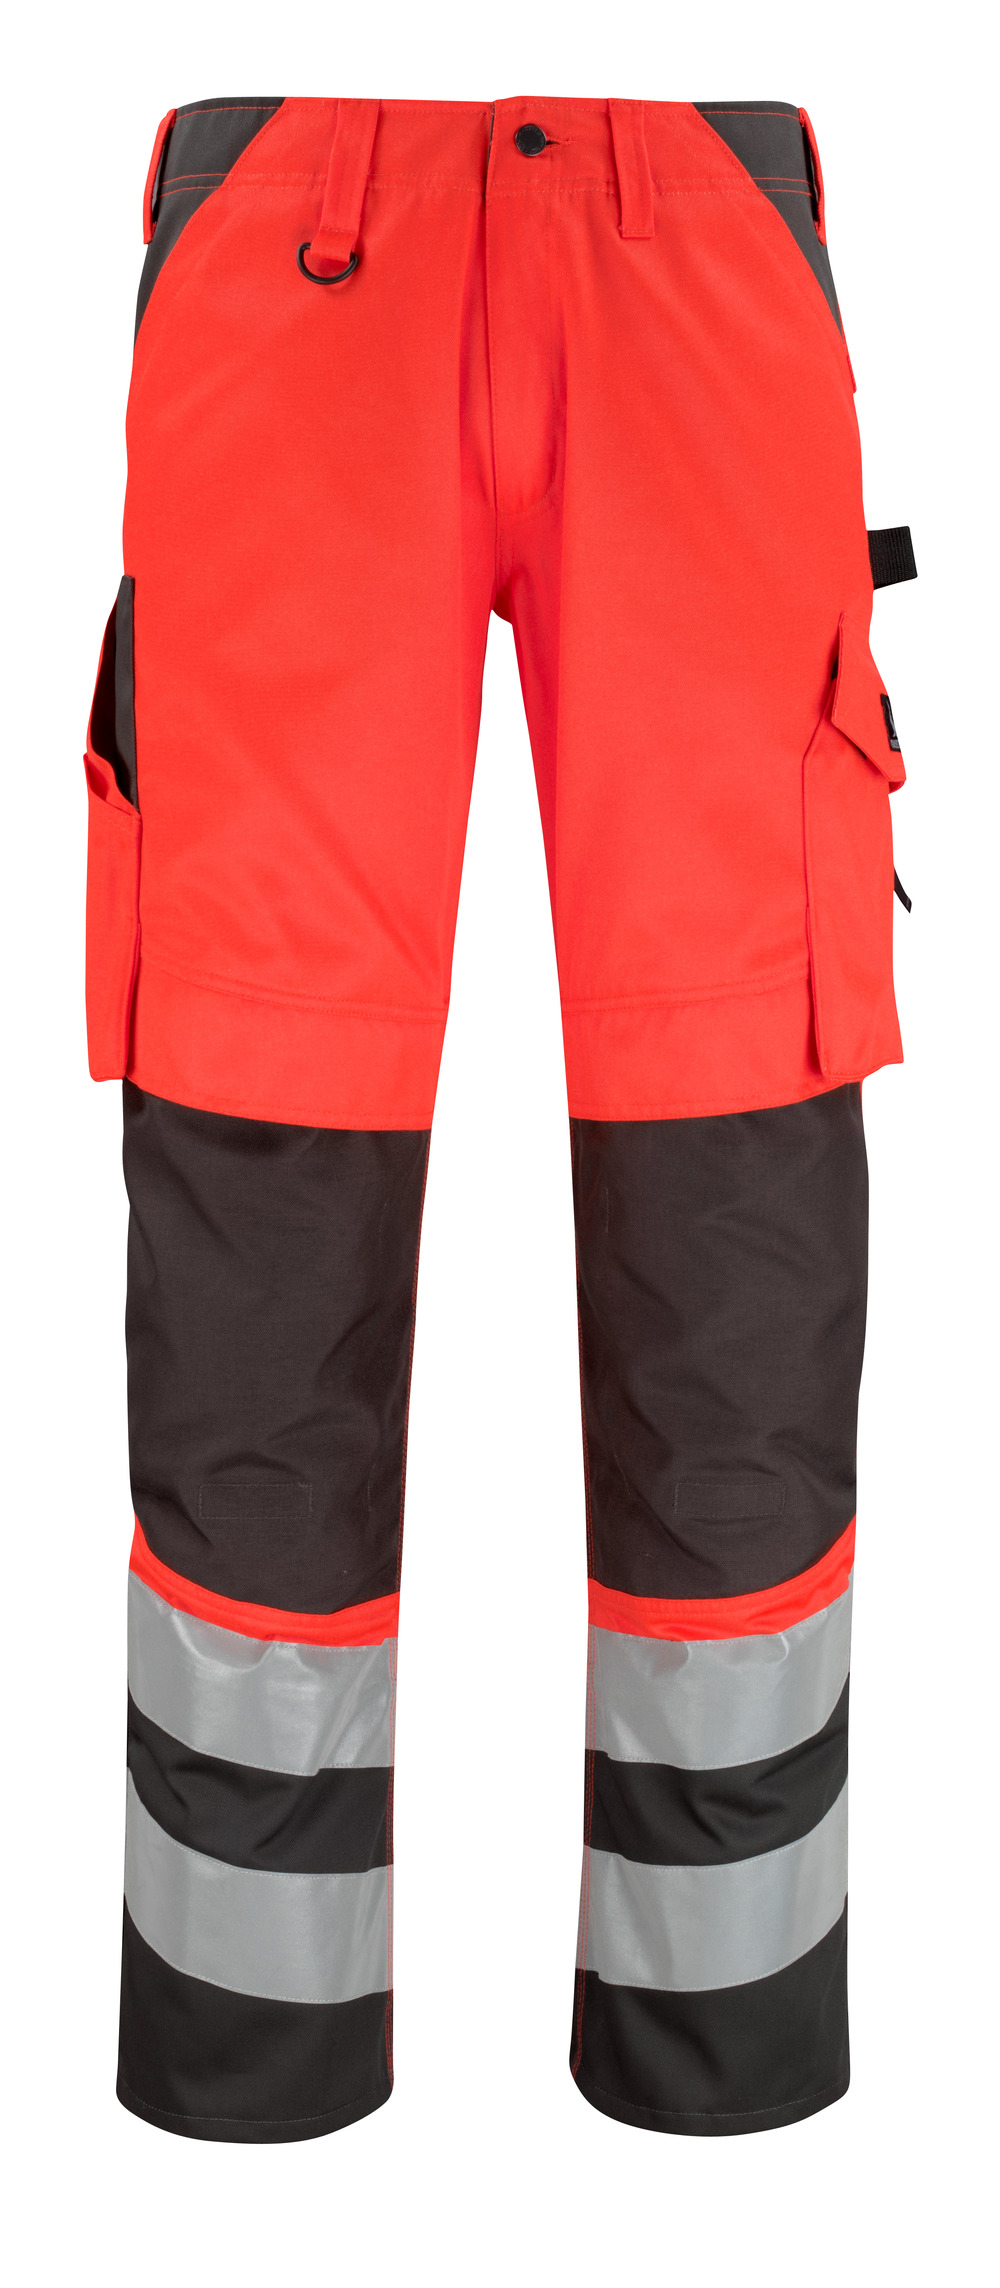 14979-860-A49 Trousers with kneepad pockets - hi-vis red/dark anthracite